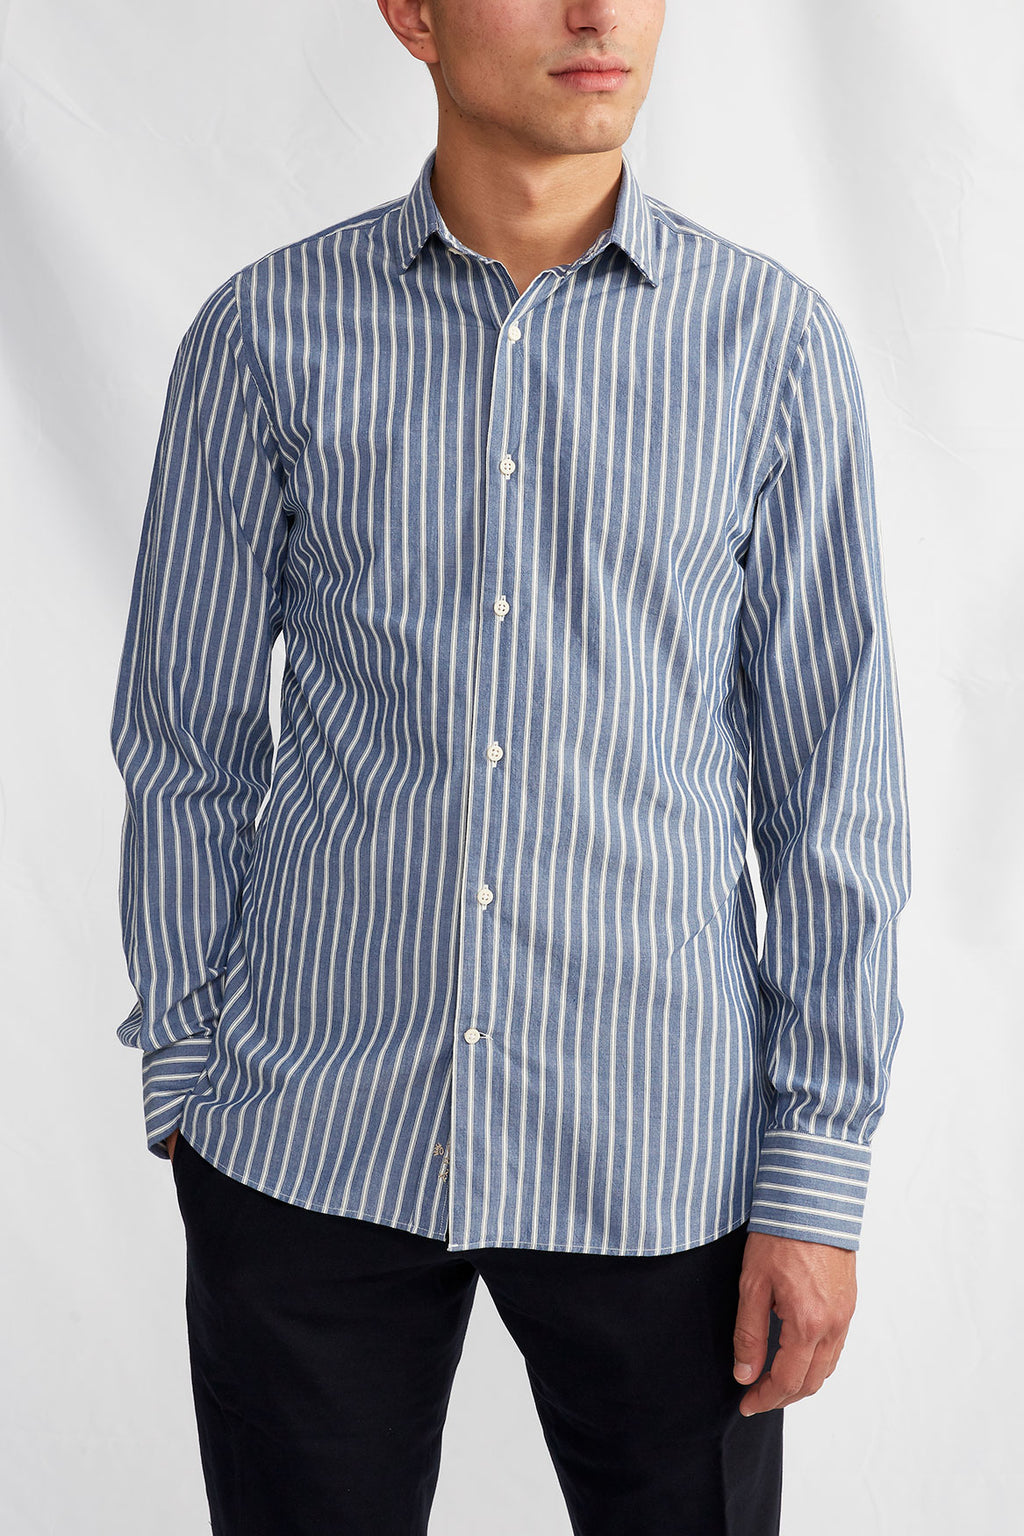 Liberty soft chambray stripe 0242